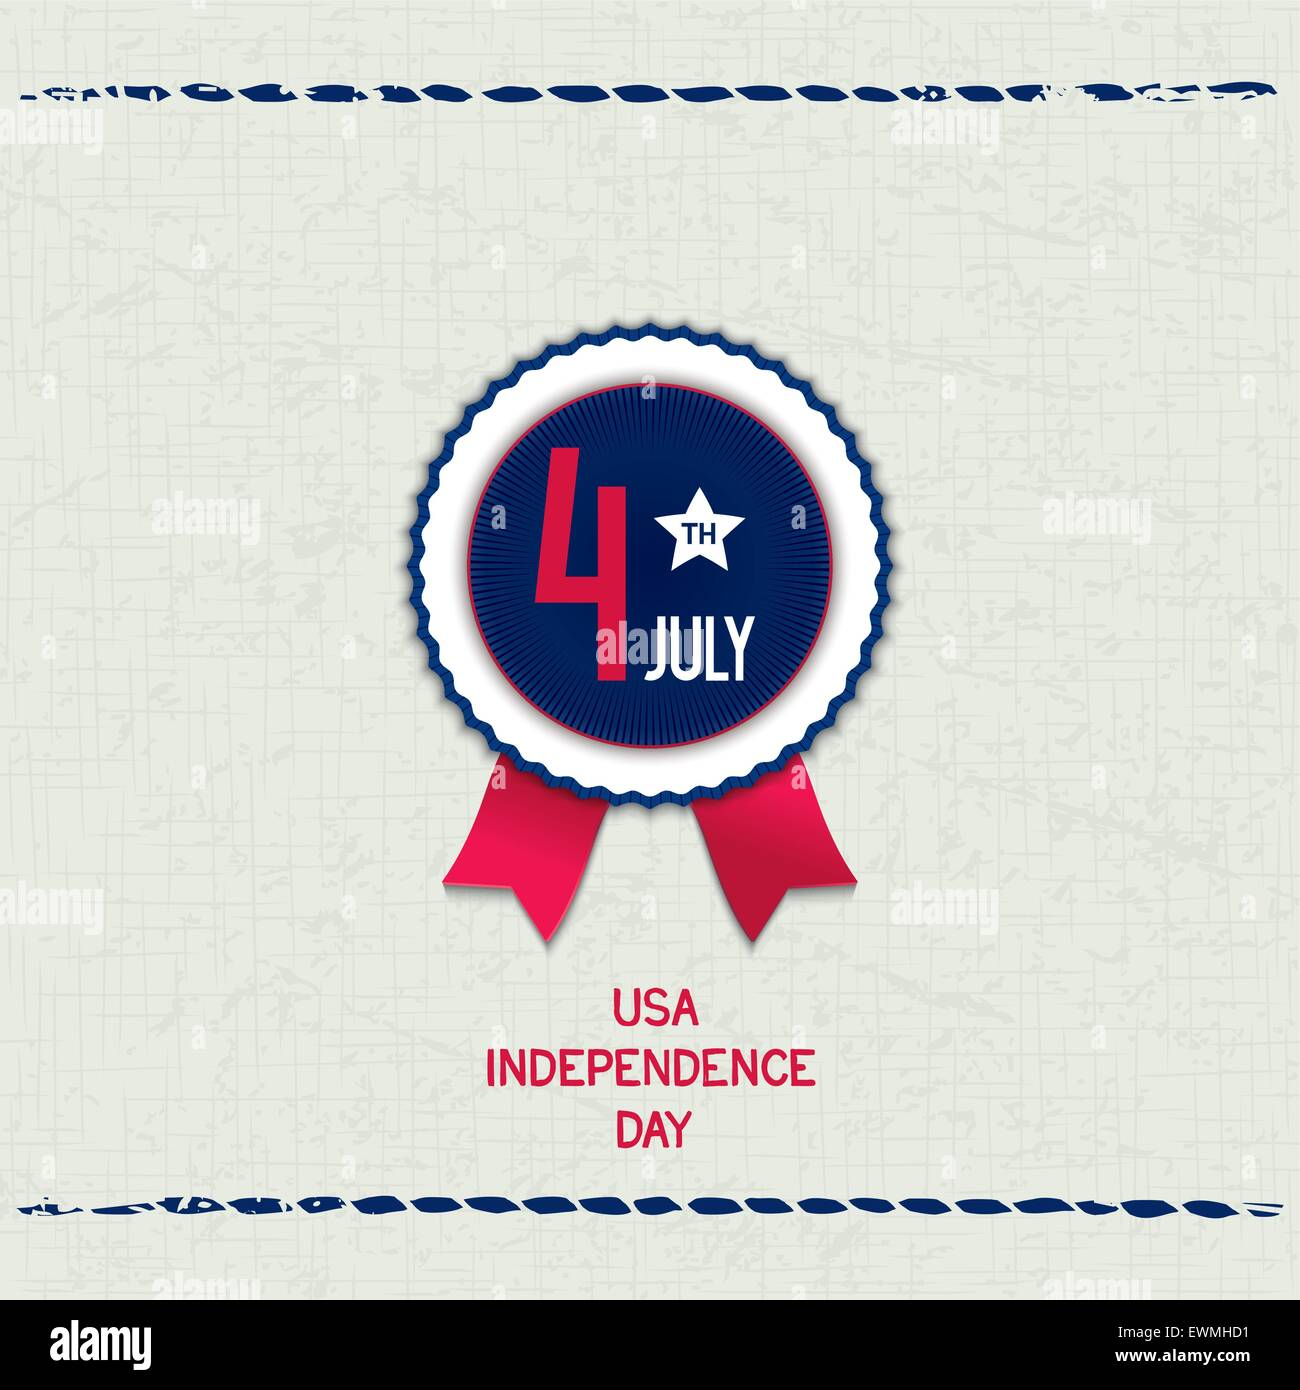 Vintage card with fabric texture and emblem for U.S. Independence Day. Vector eps 10 - Stock Vector